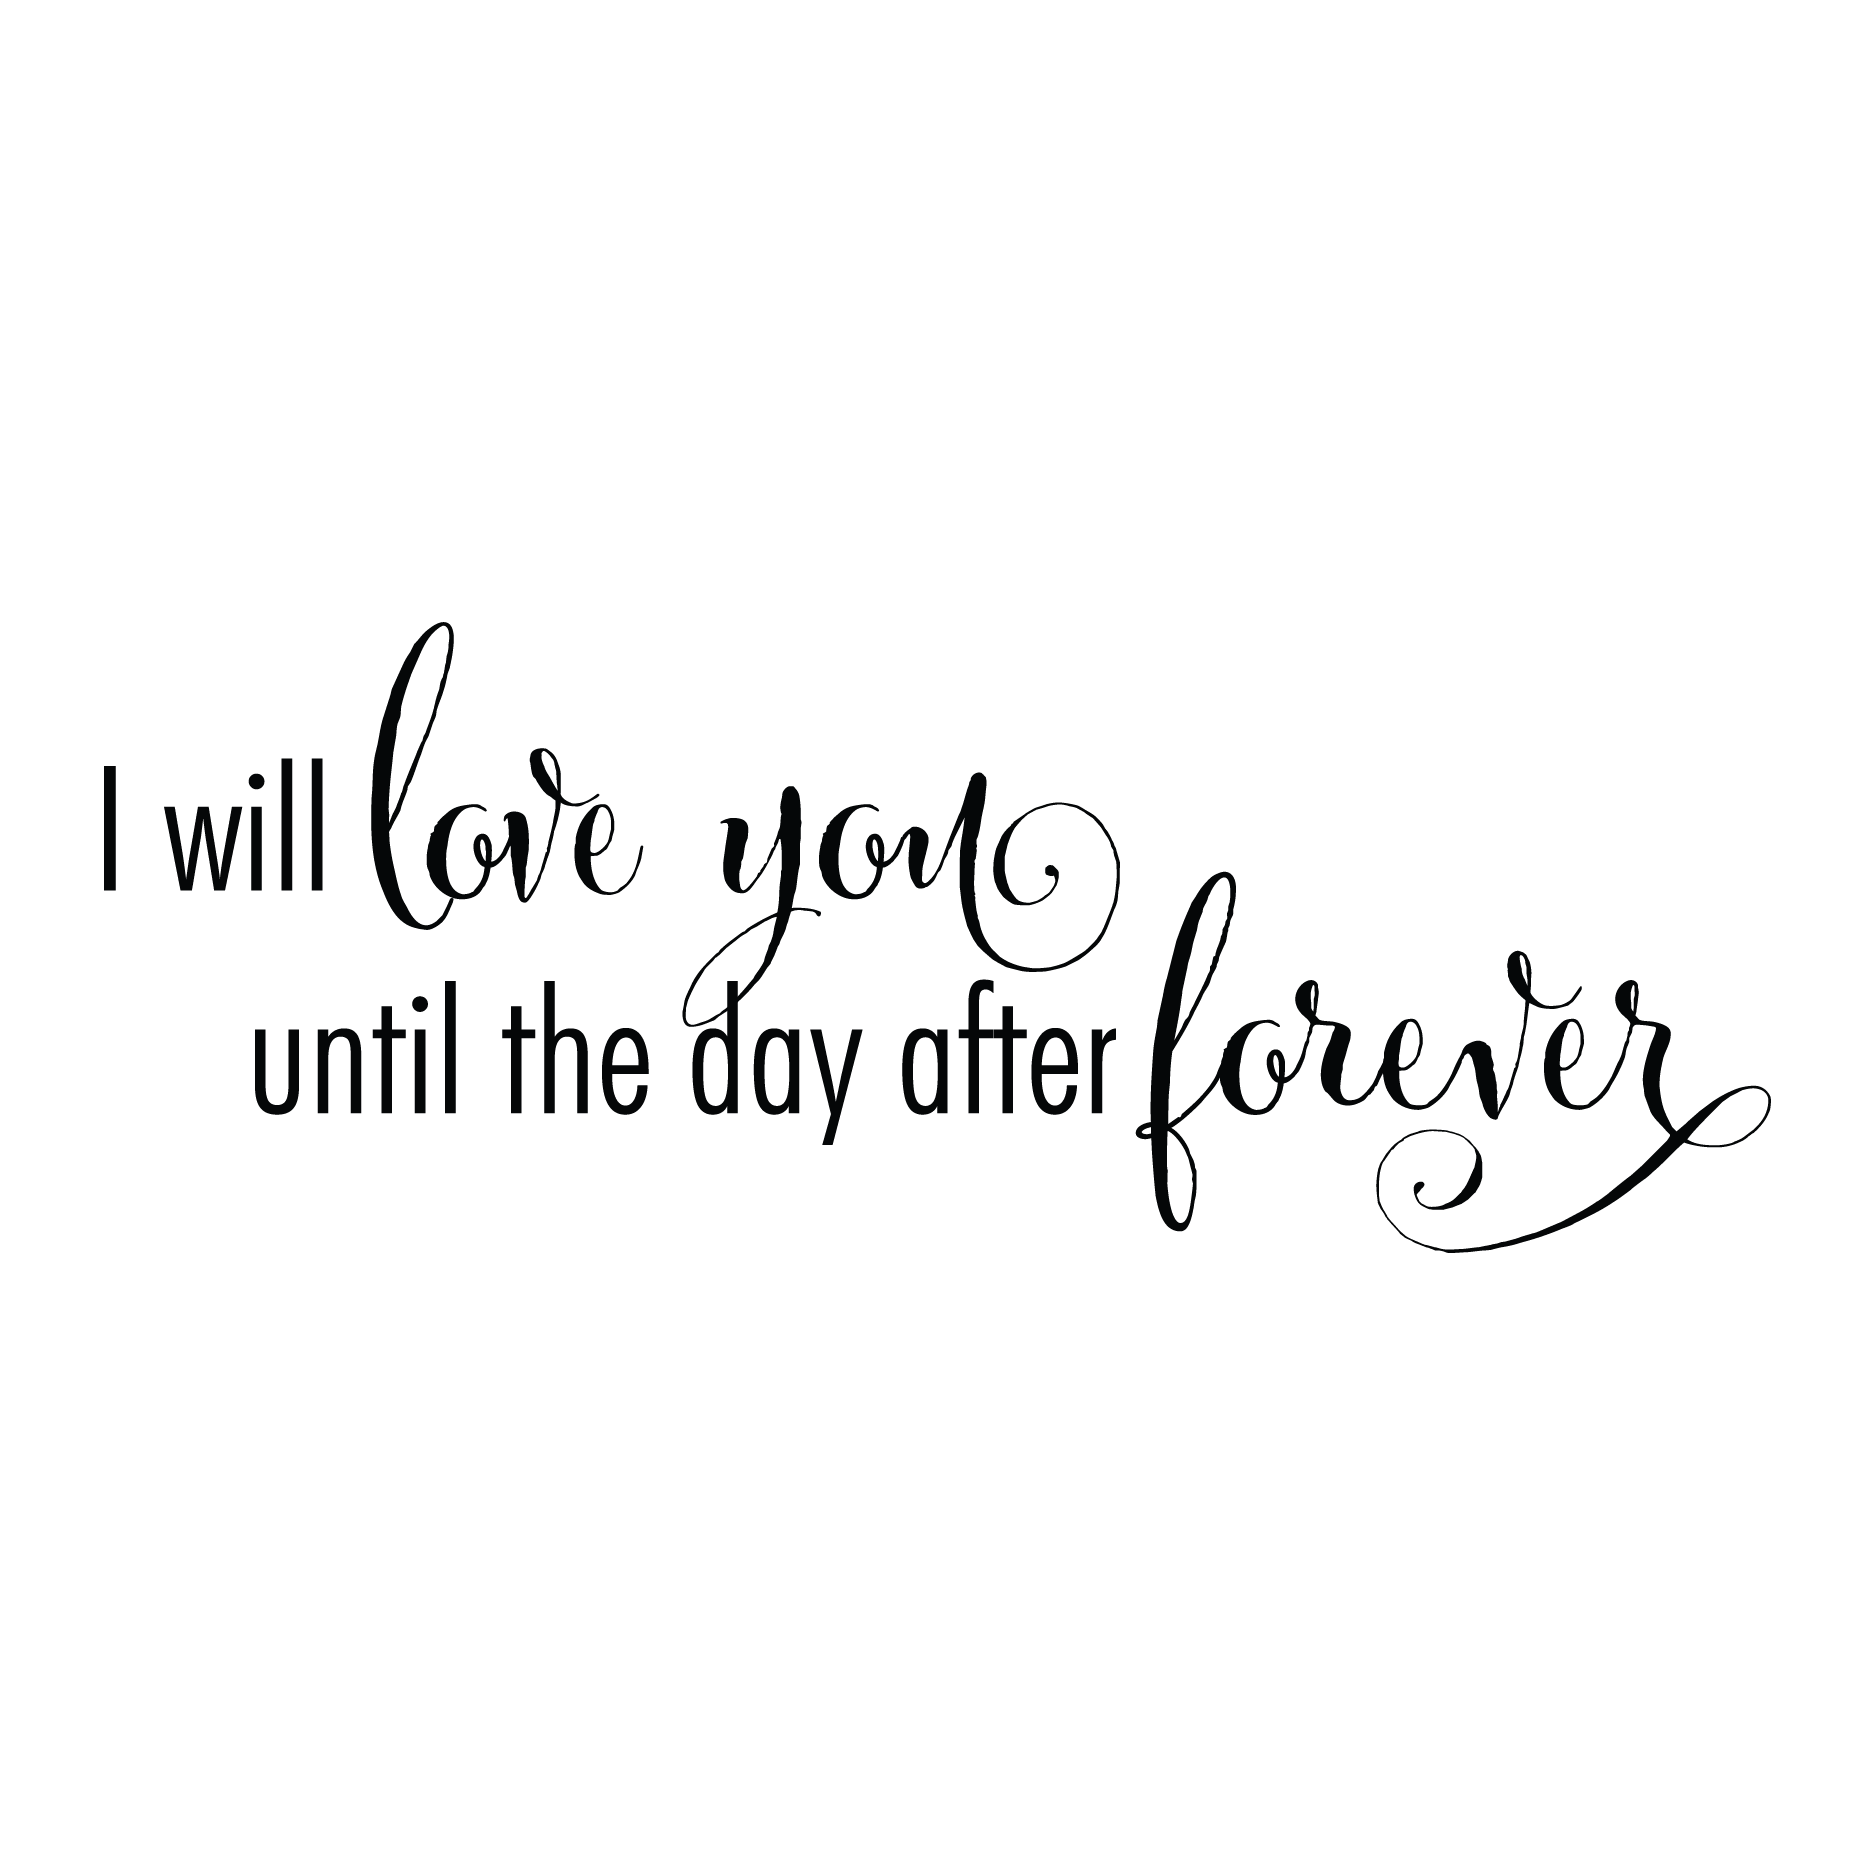 I Ll Love You Forever Quotes Impressive I Will Love You Until The Day After Foreverquote For Wall $44